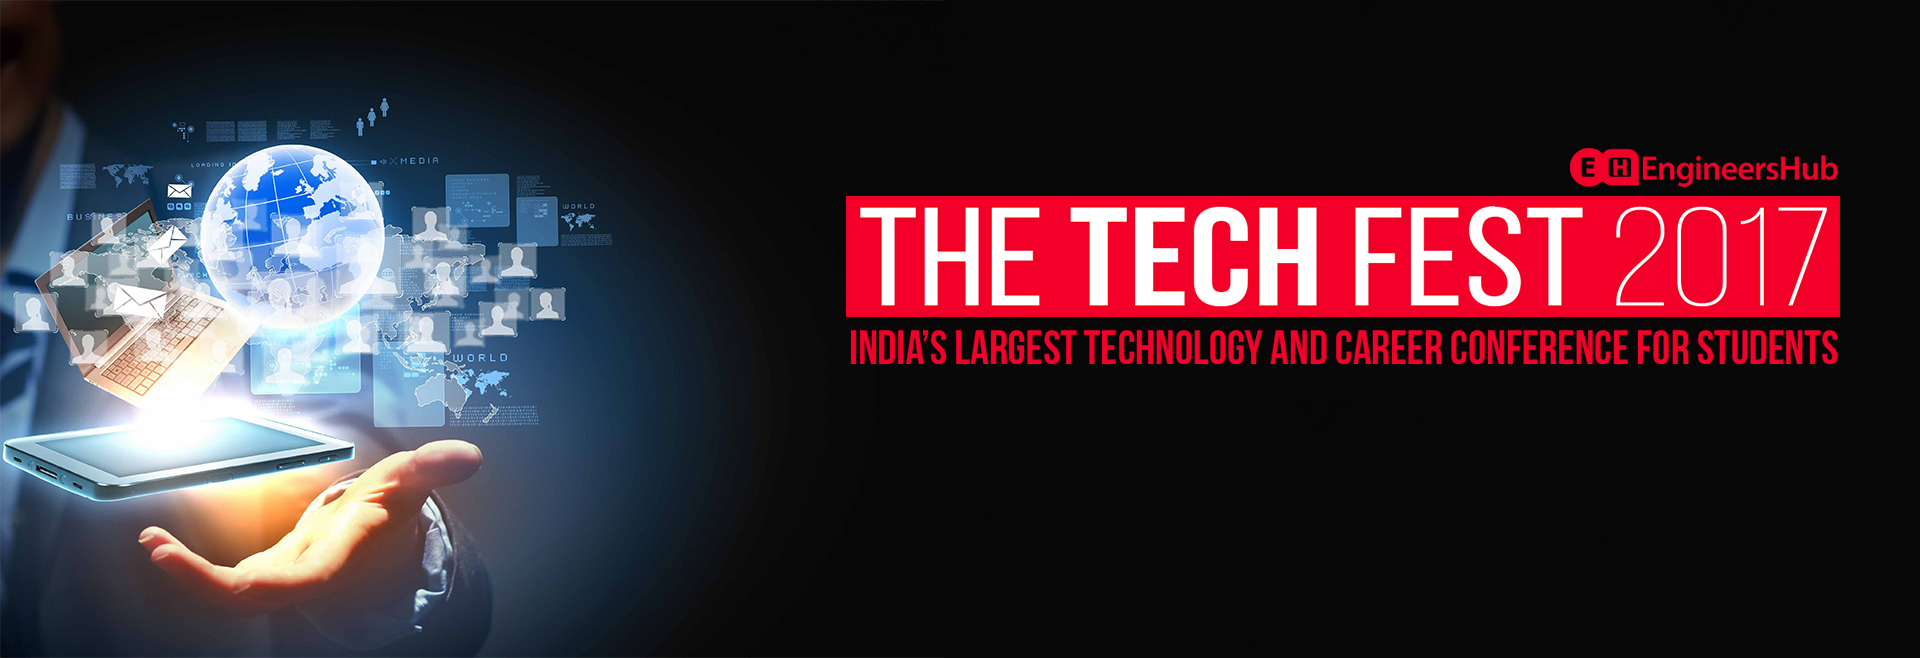 The TechFest 2017-Awaken The Future